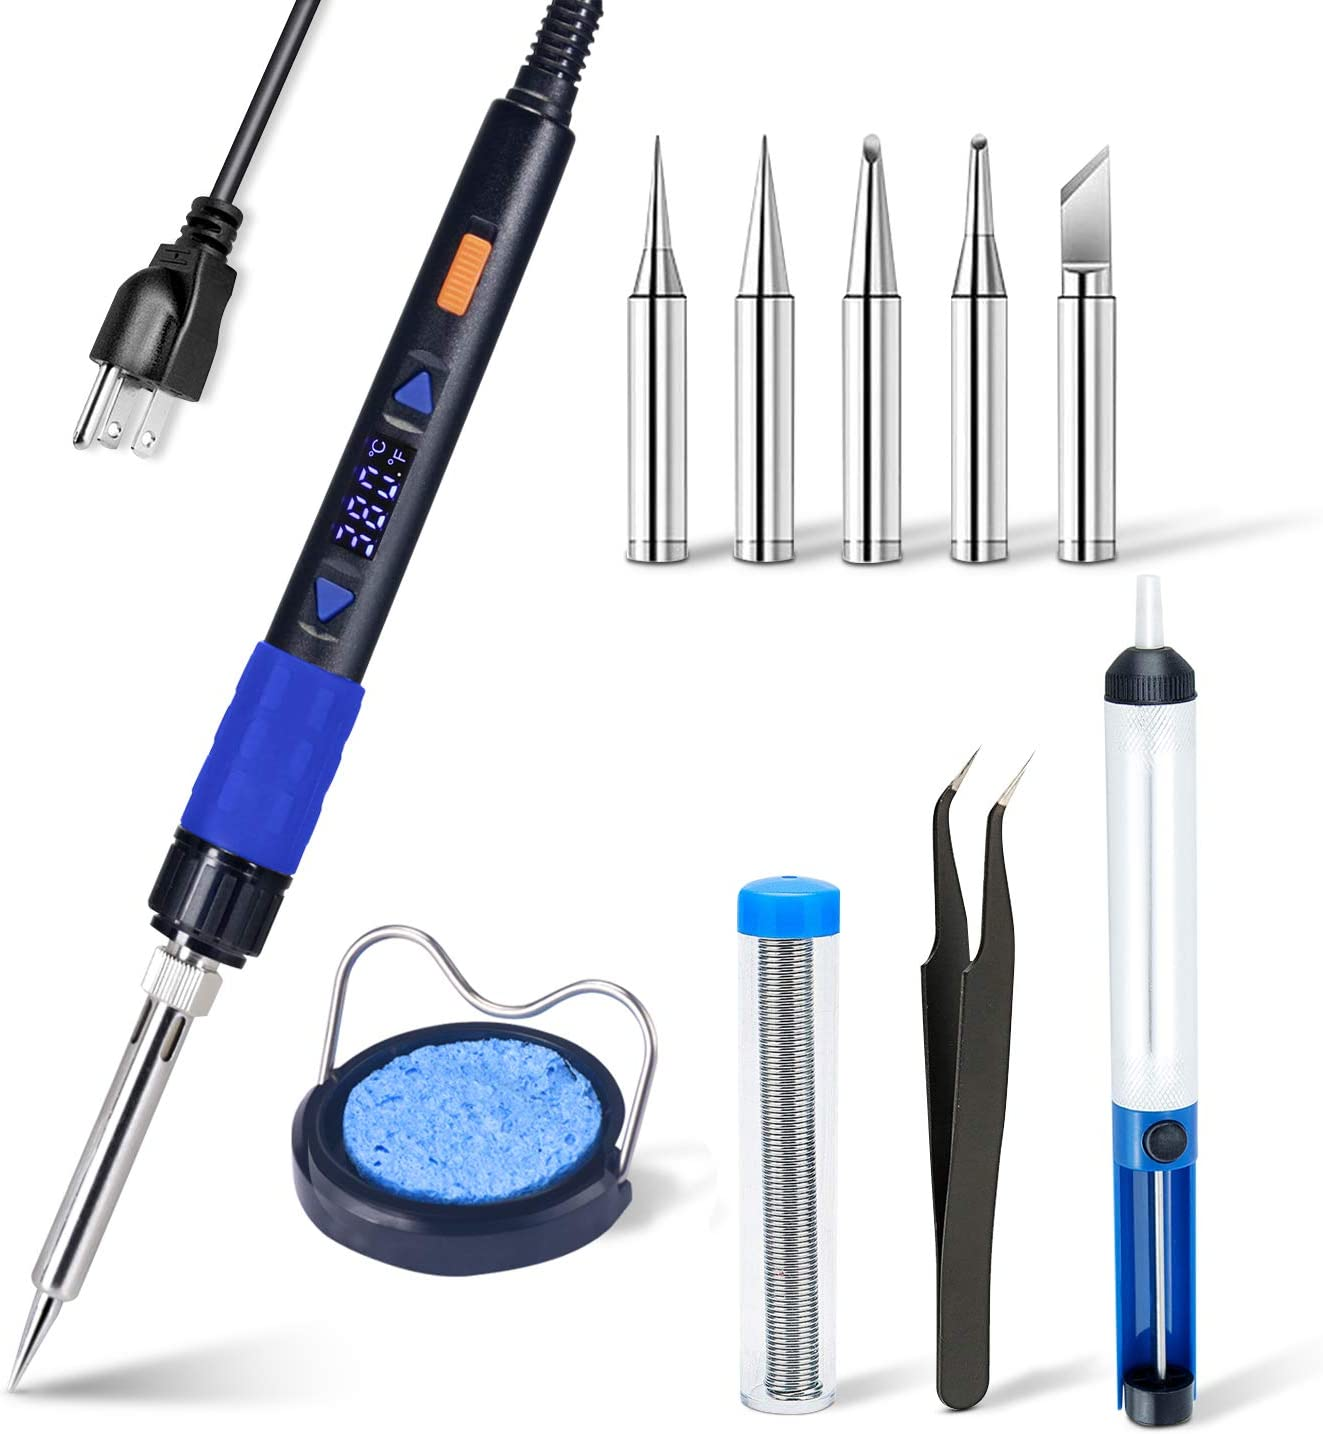 GROOMY Electric Soldering Iron With Plastic Handle Flat Tip For Car Bumper Repair